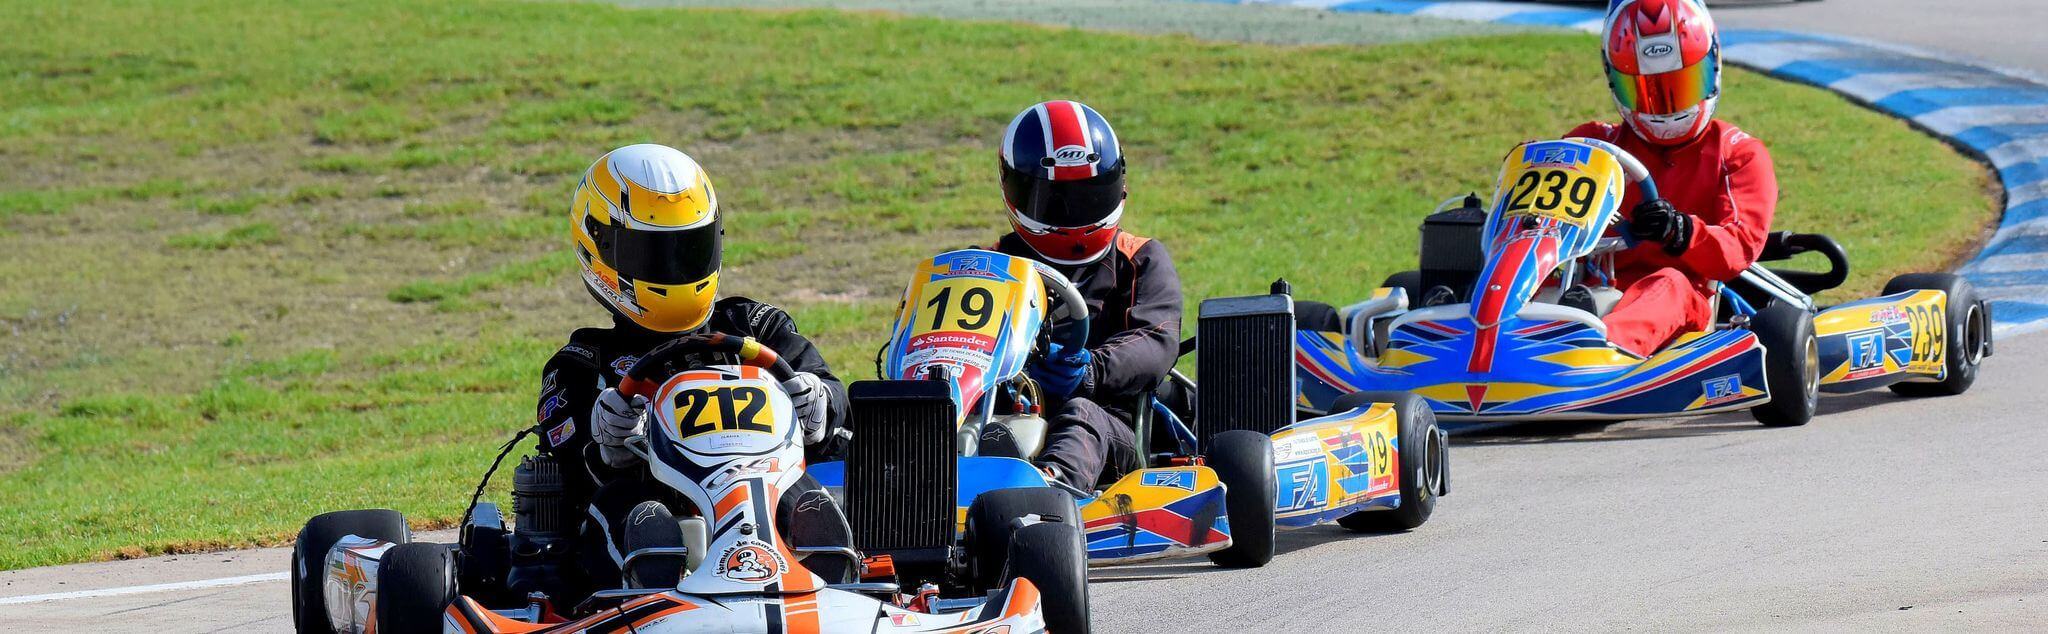 Karting in Somerset